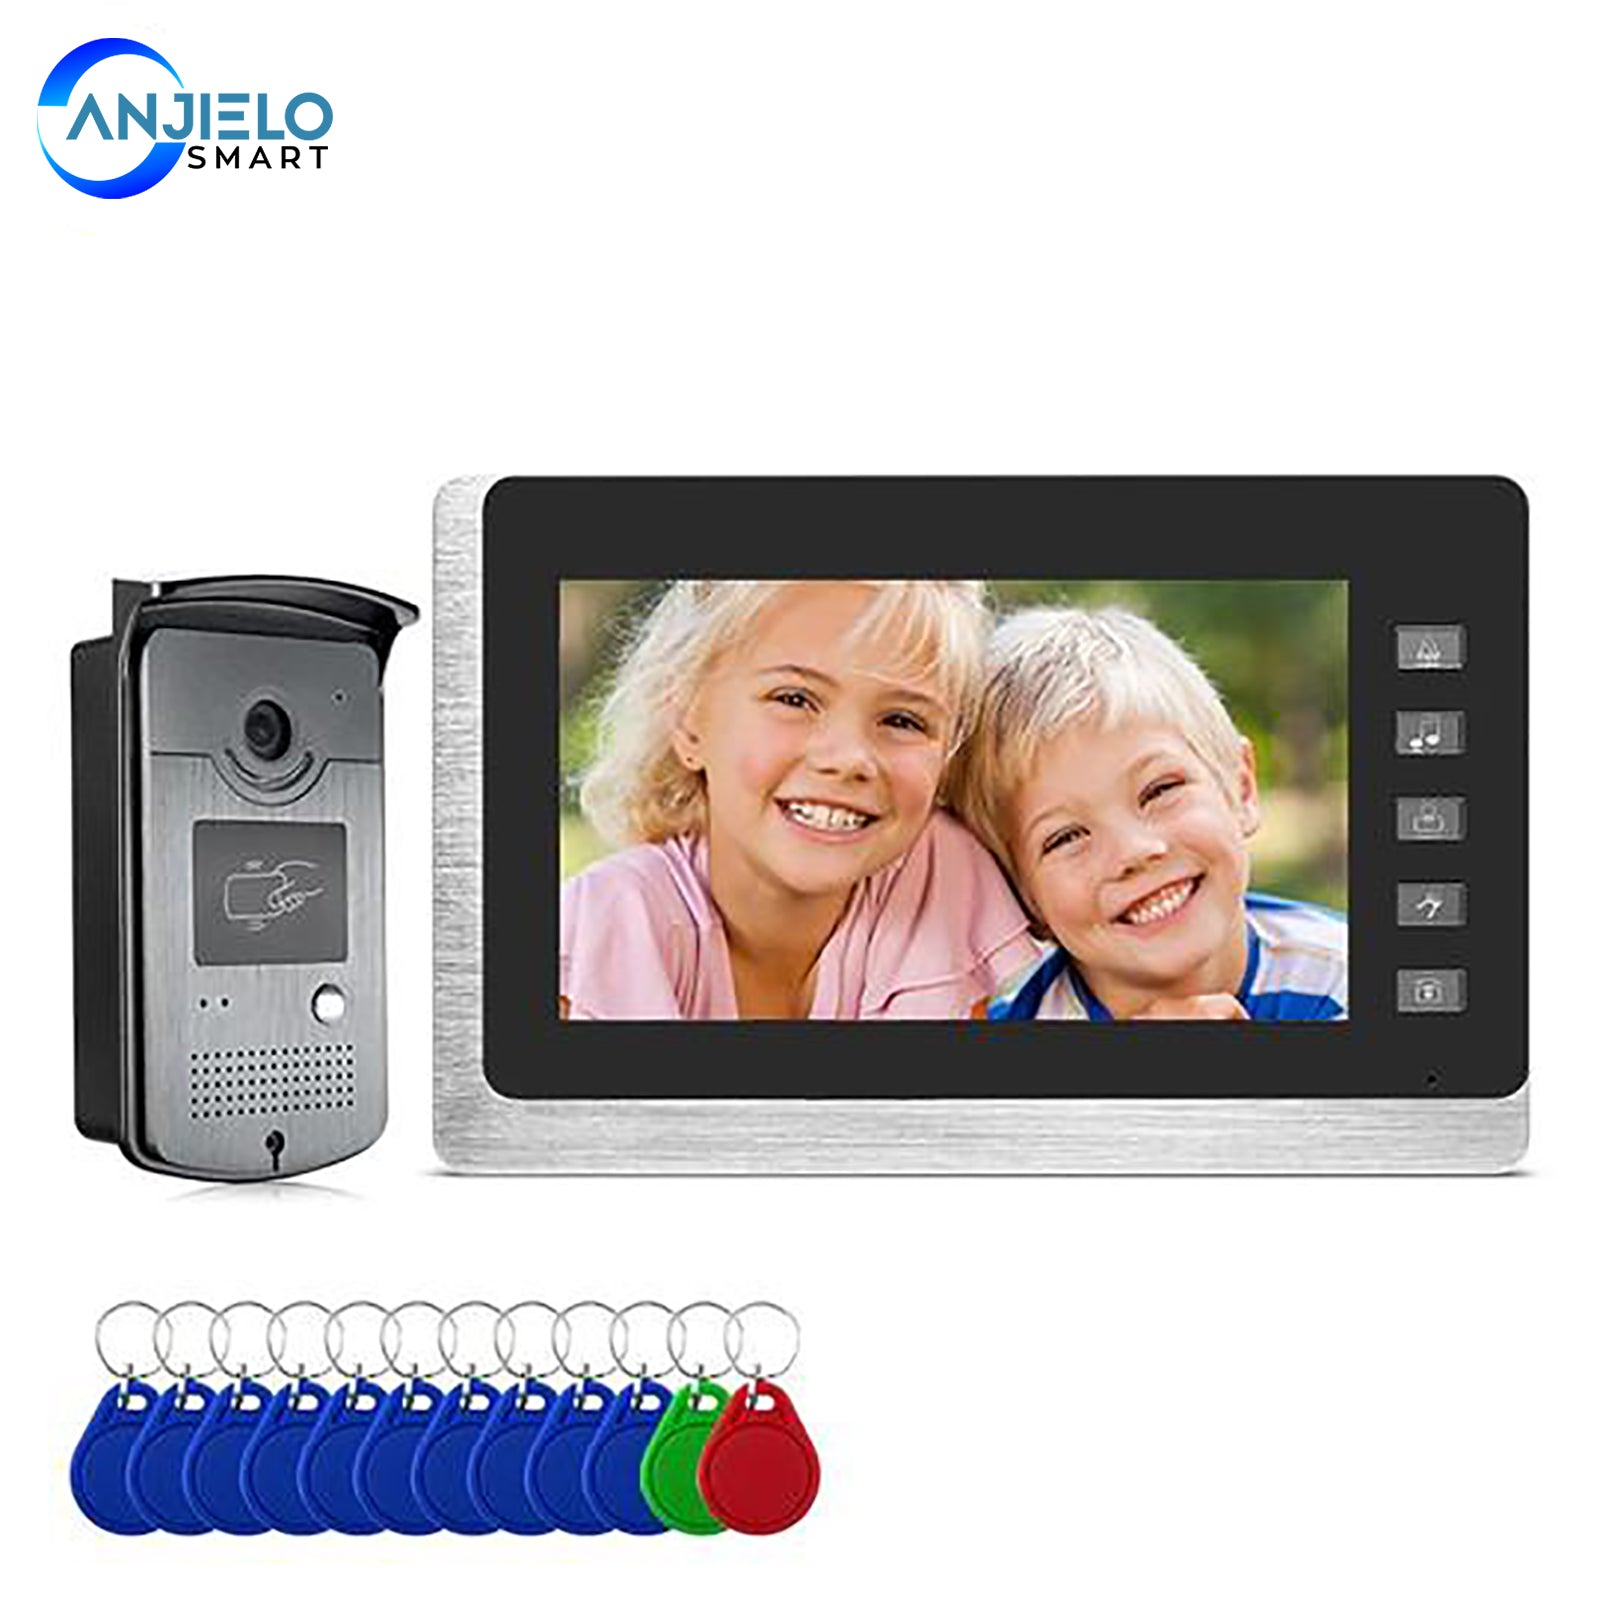 AnjieloSmart Video Door Intercom Entry System Kit Wired Video Doorbell Phone Rainproof Call Panel IR Camera for Home Security